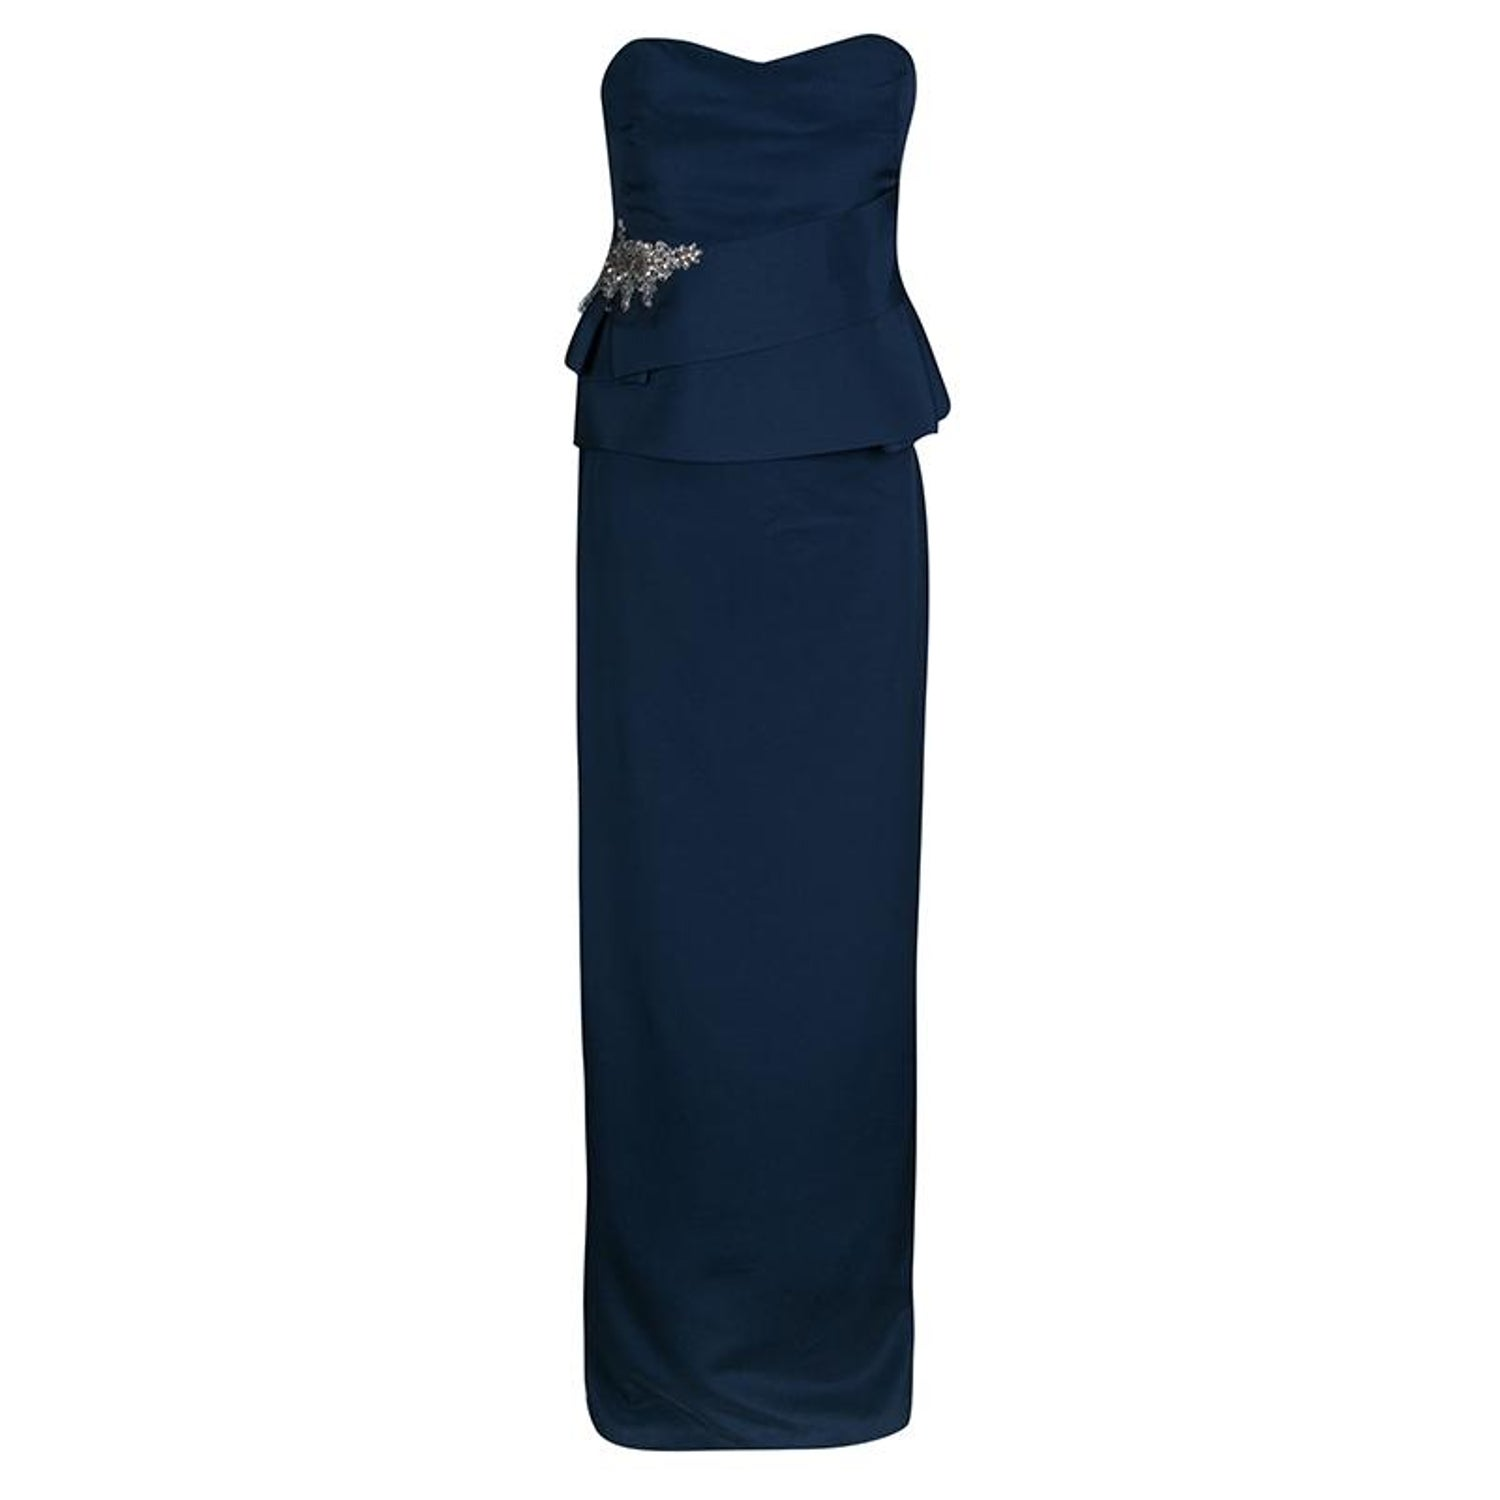 7238f473de1 Notte by Marchesa Navy Blue Silk Embellished Strapless Peplum Gown L For  Sale at 1stdibs